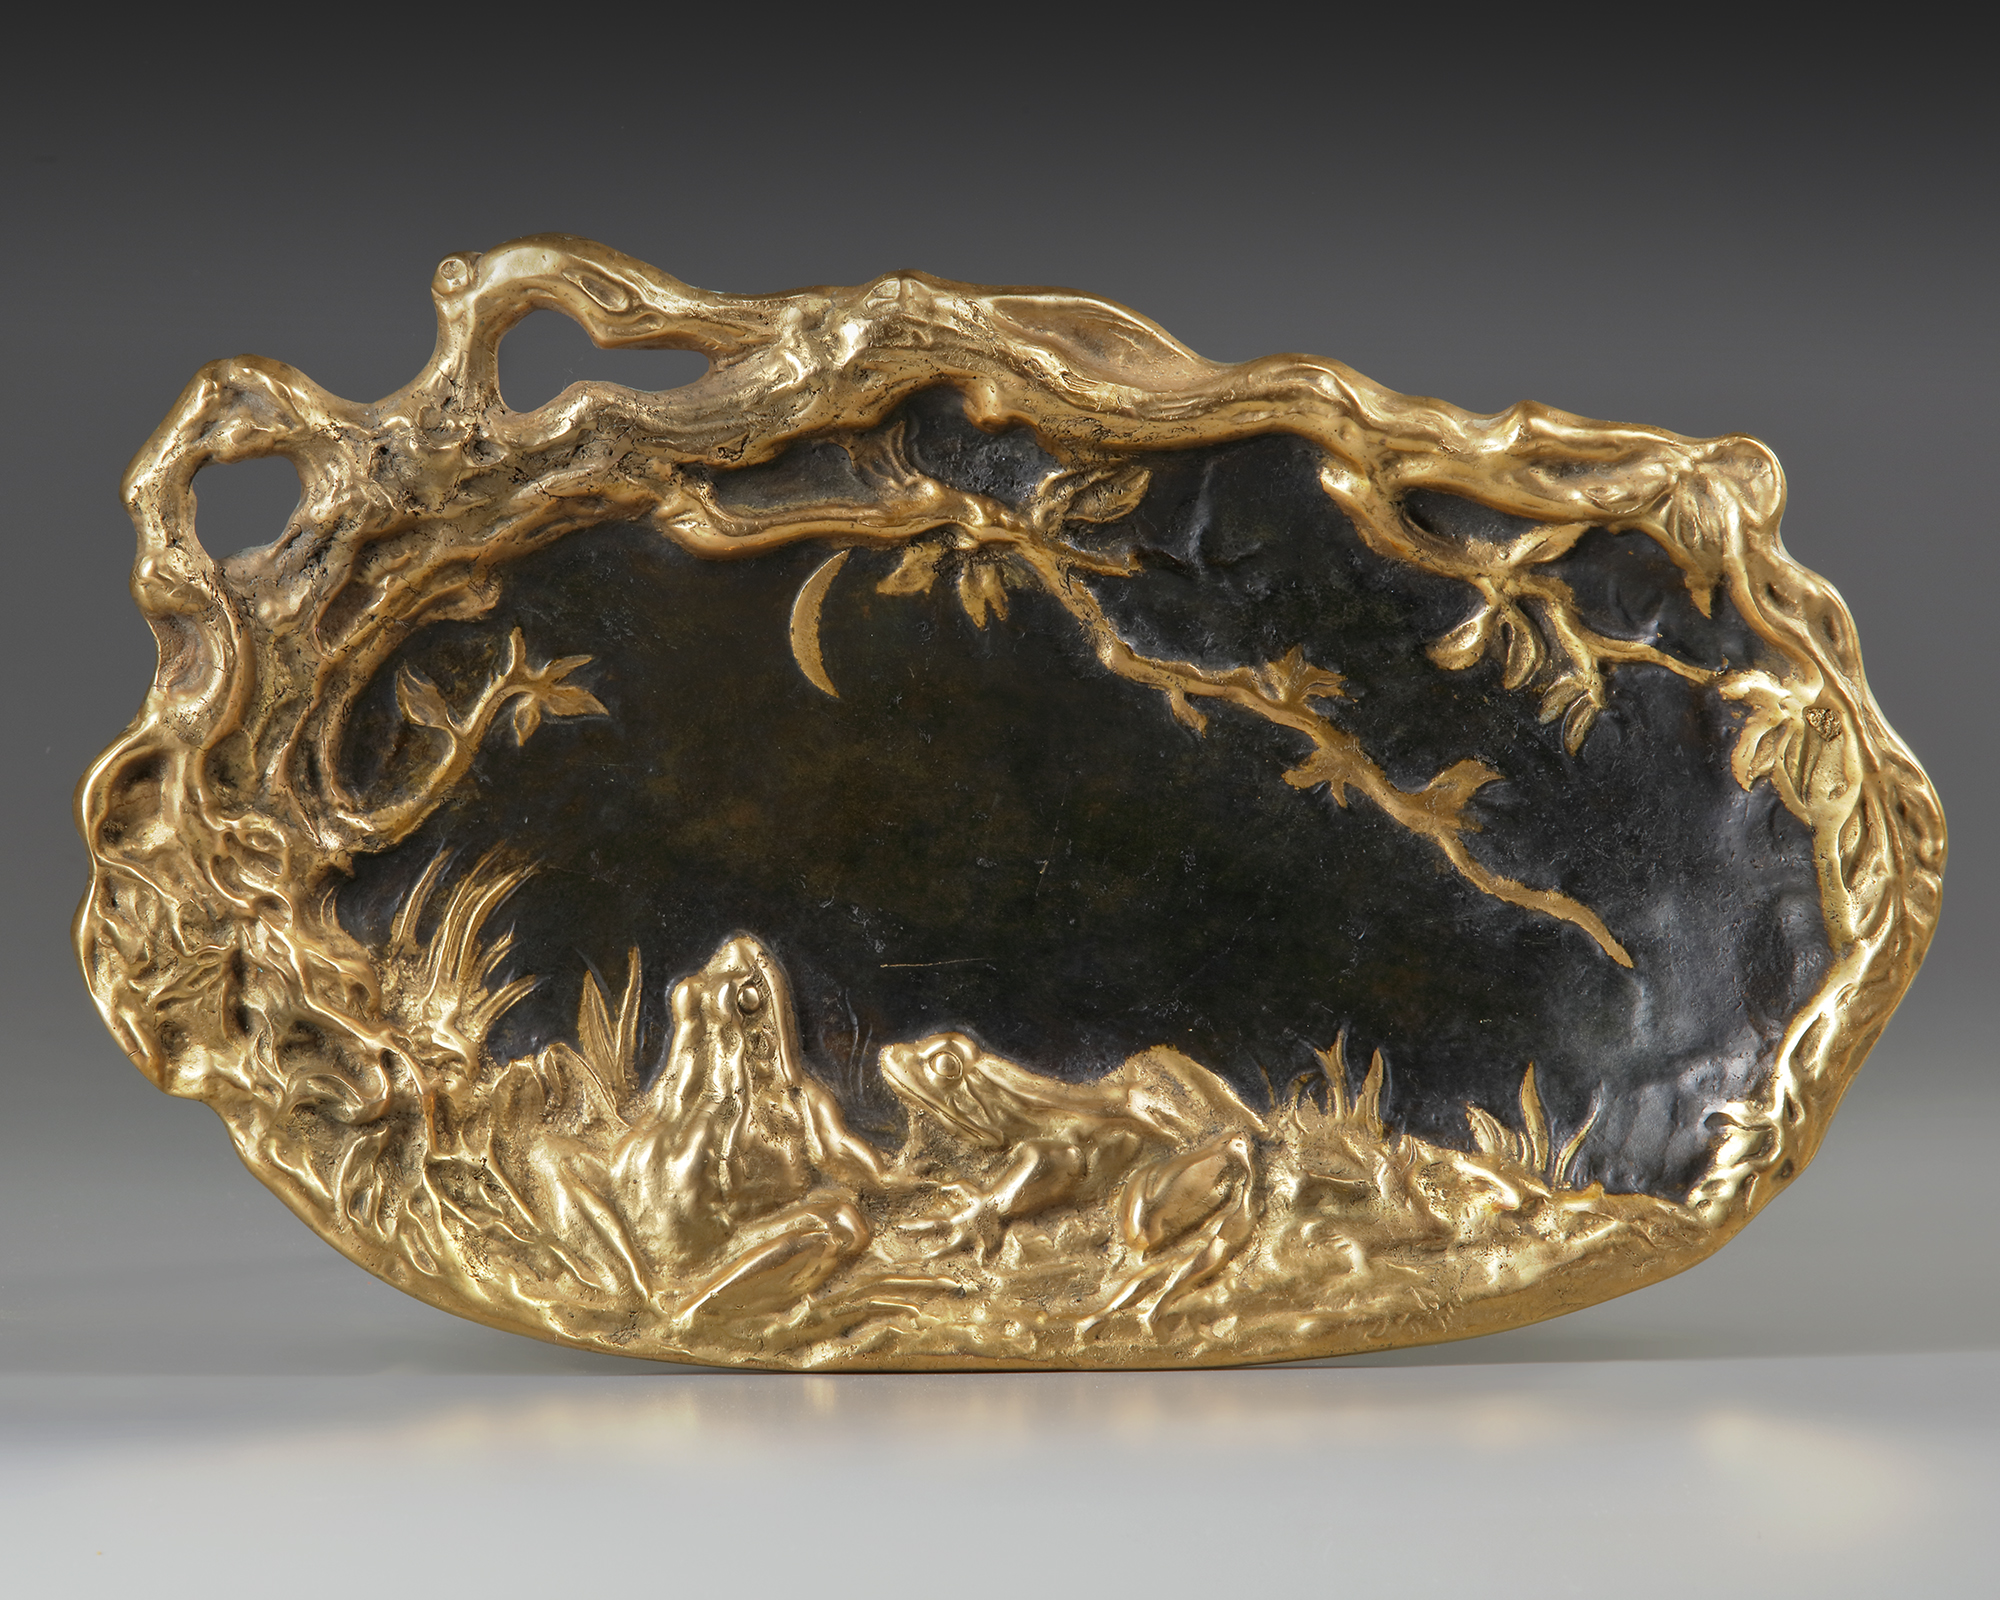 A FRENCH GILT AND BROWN PATINATED PLATE, LATE 19TH CENTURY